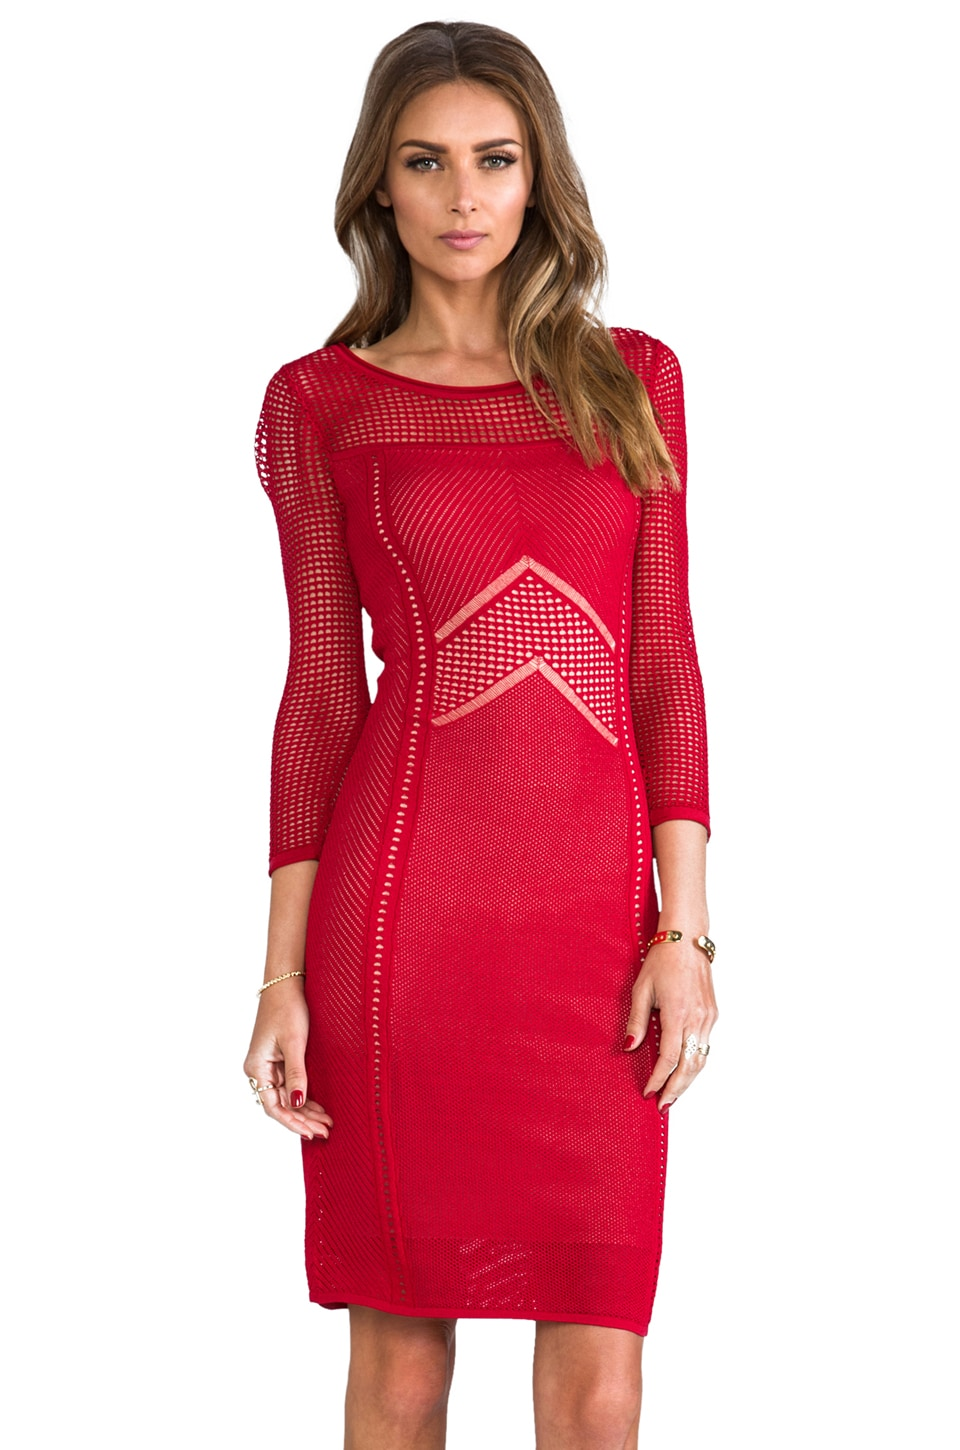 Catherine Malandrino Brooke Pointelle Dress in Vermilion